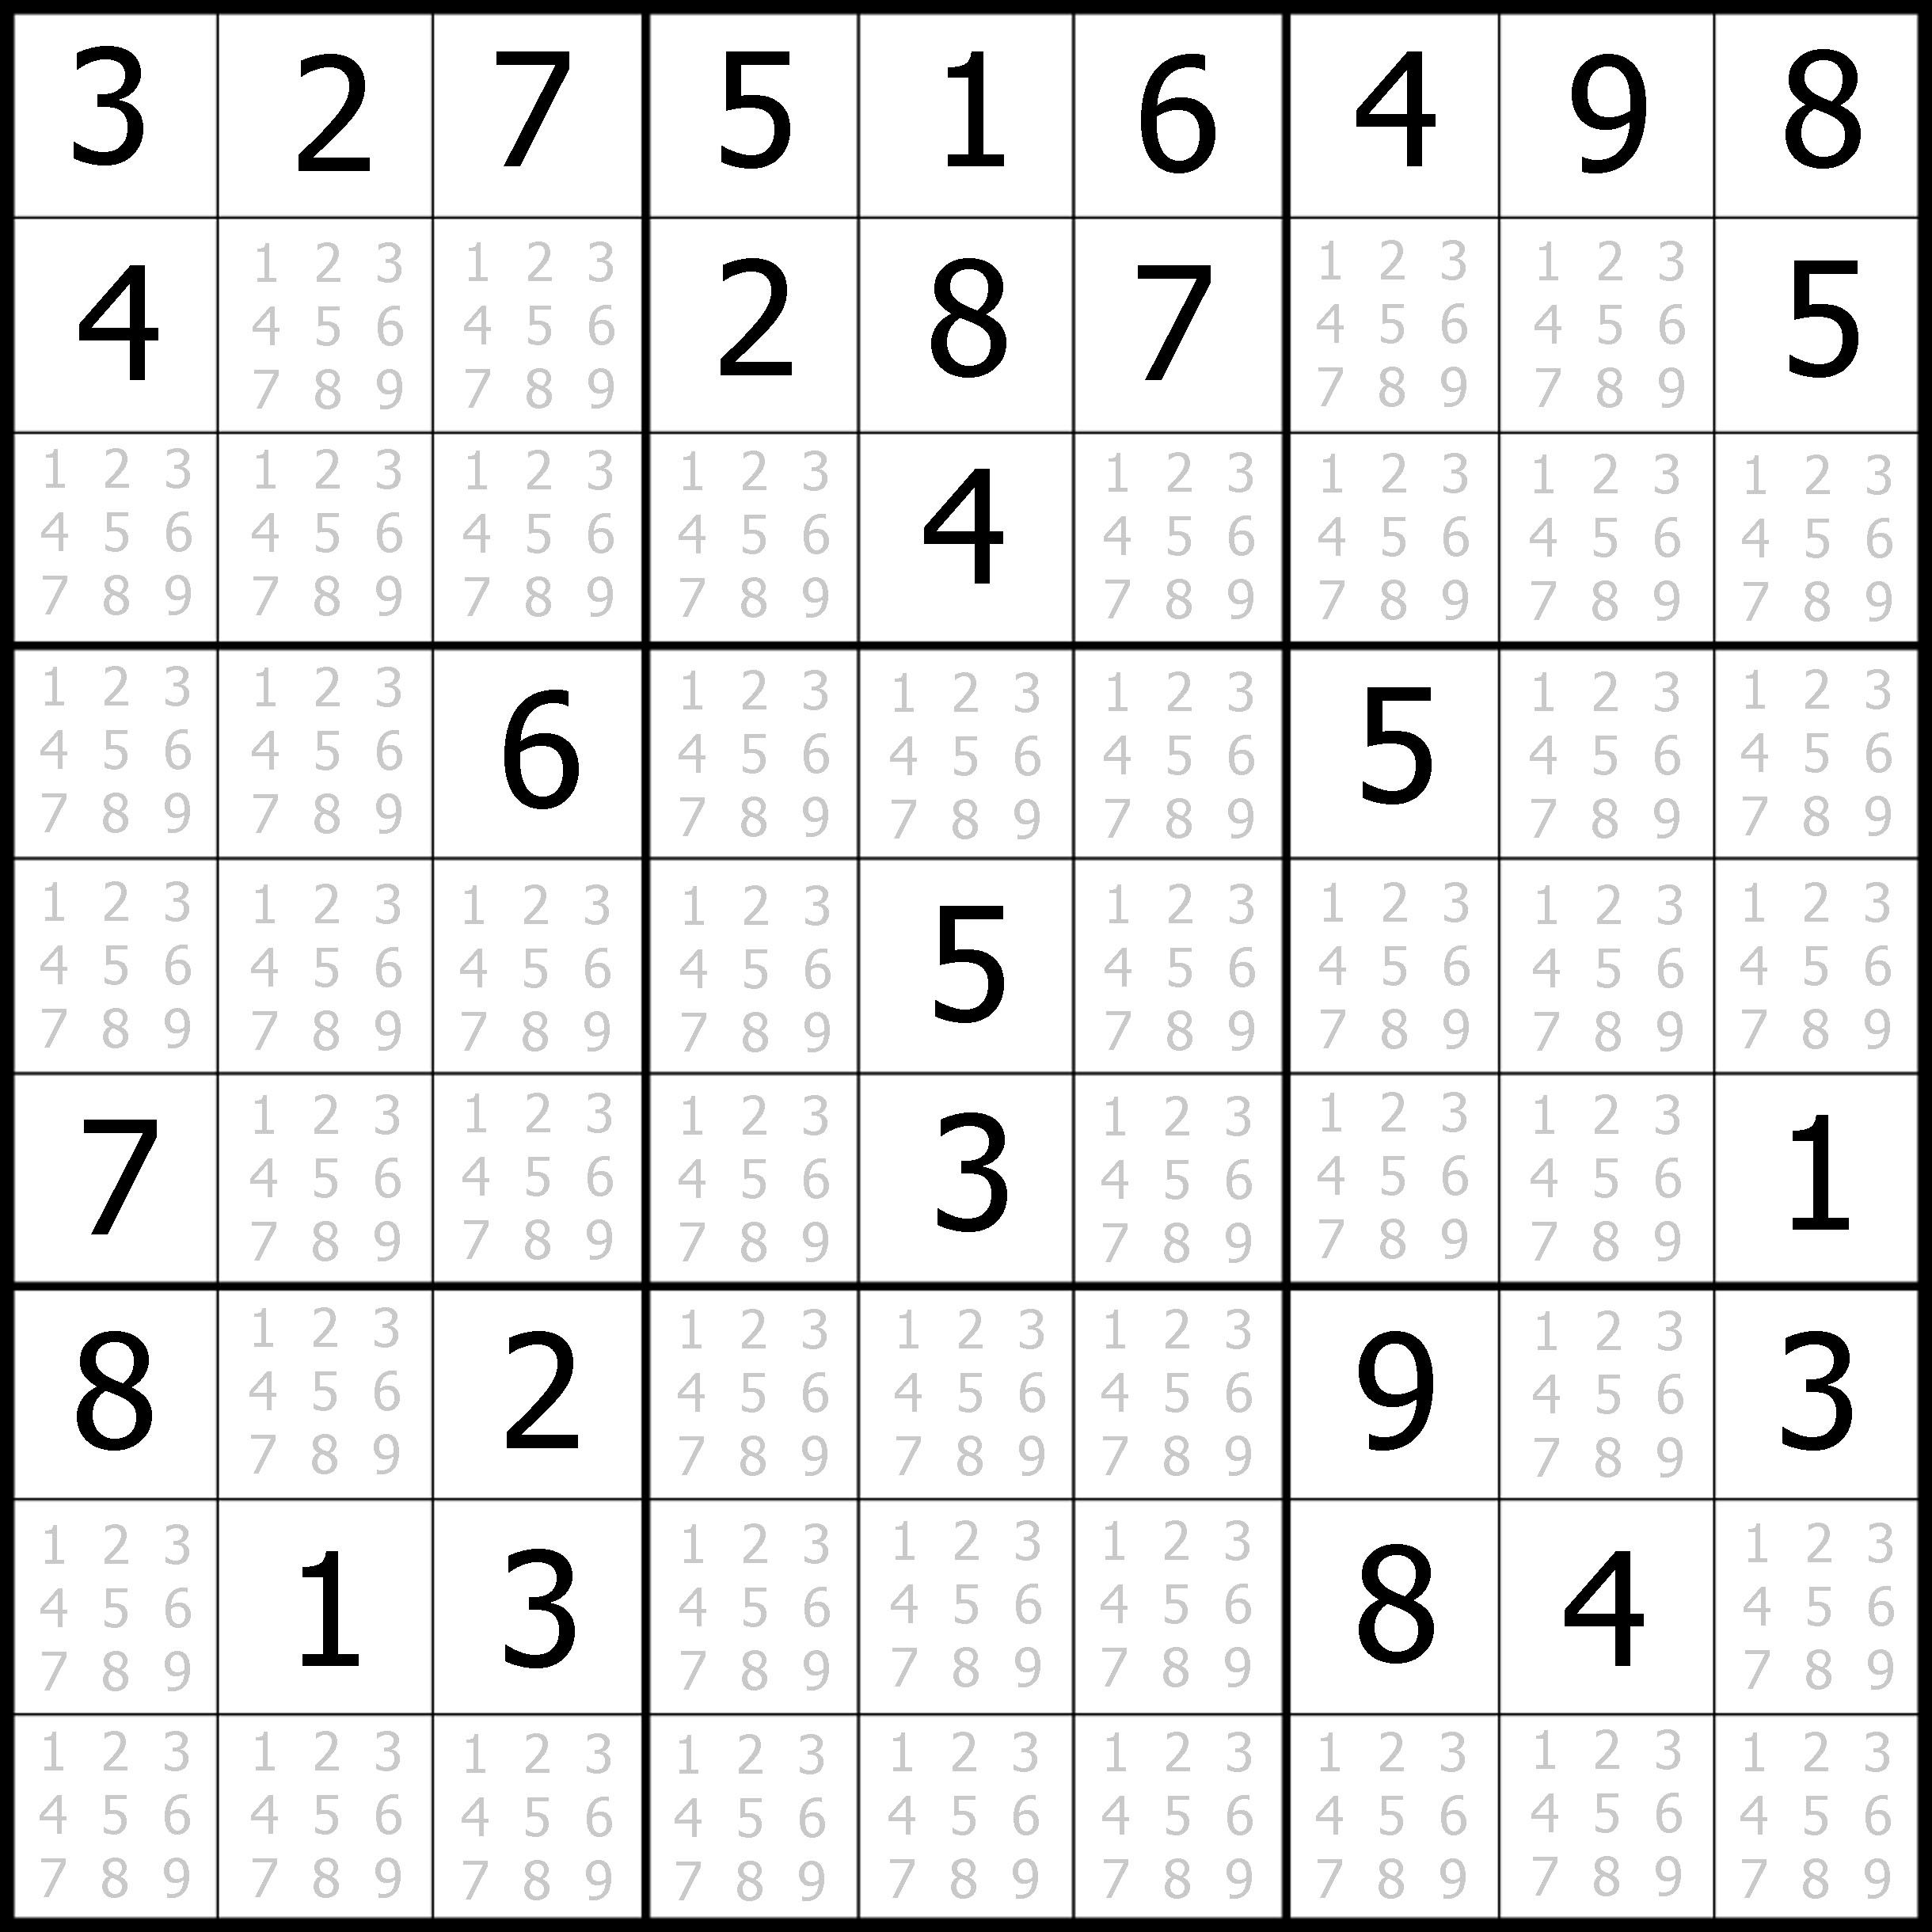 Sudoku Printable | Free, Medium, Printable Sudoku Puzzle #1 | My - Printable Sudoku Puzzles For Beginners